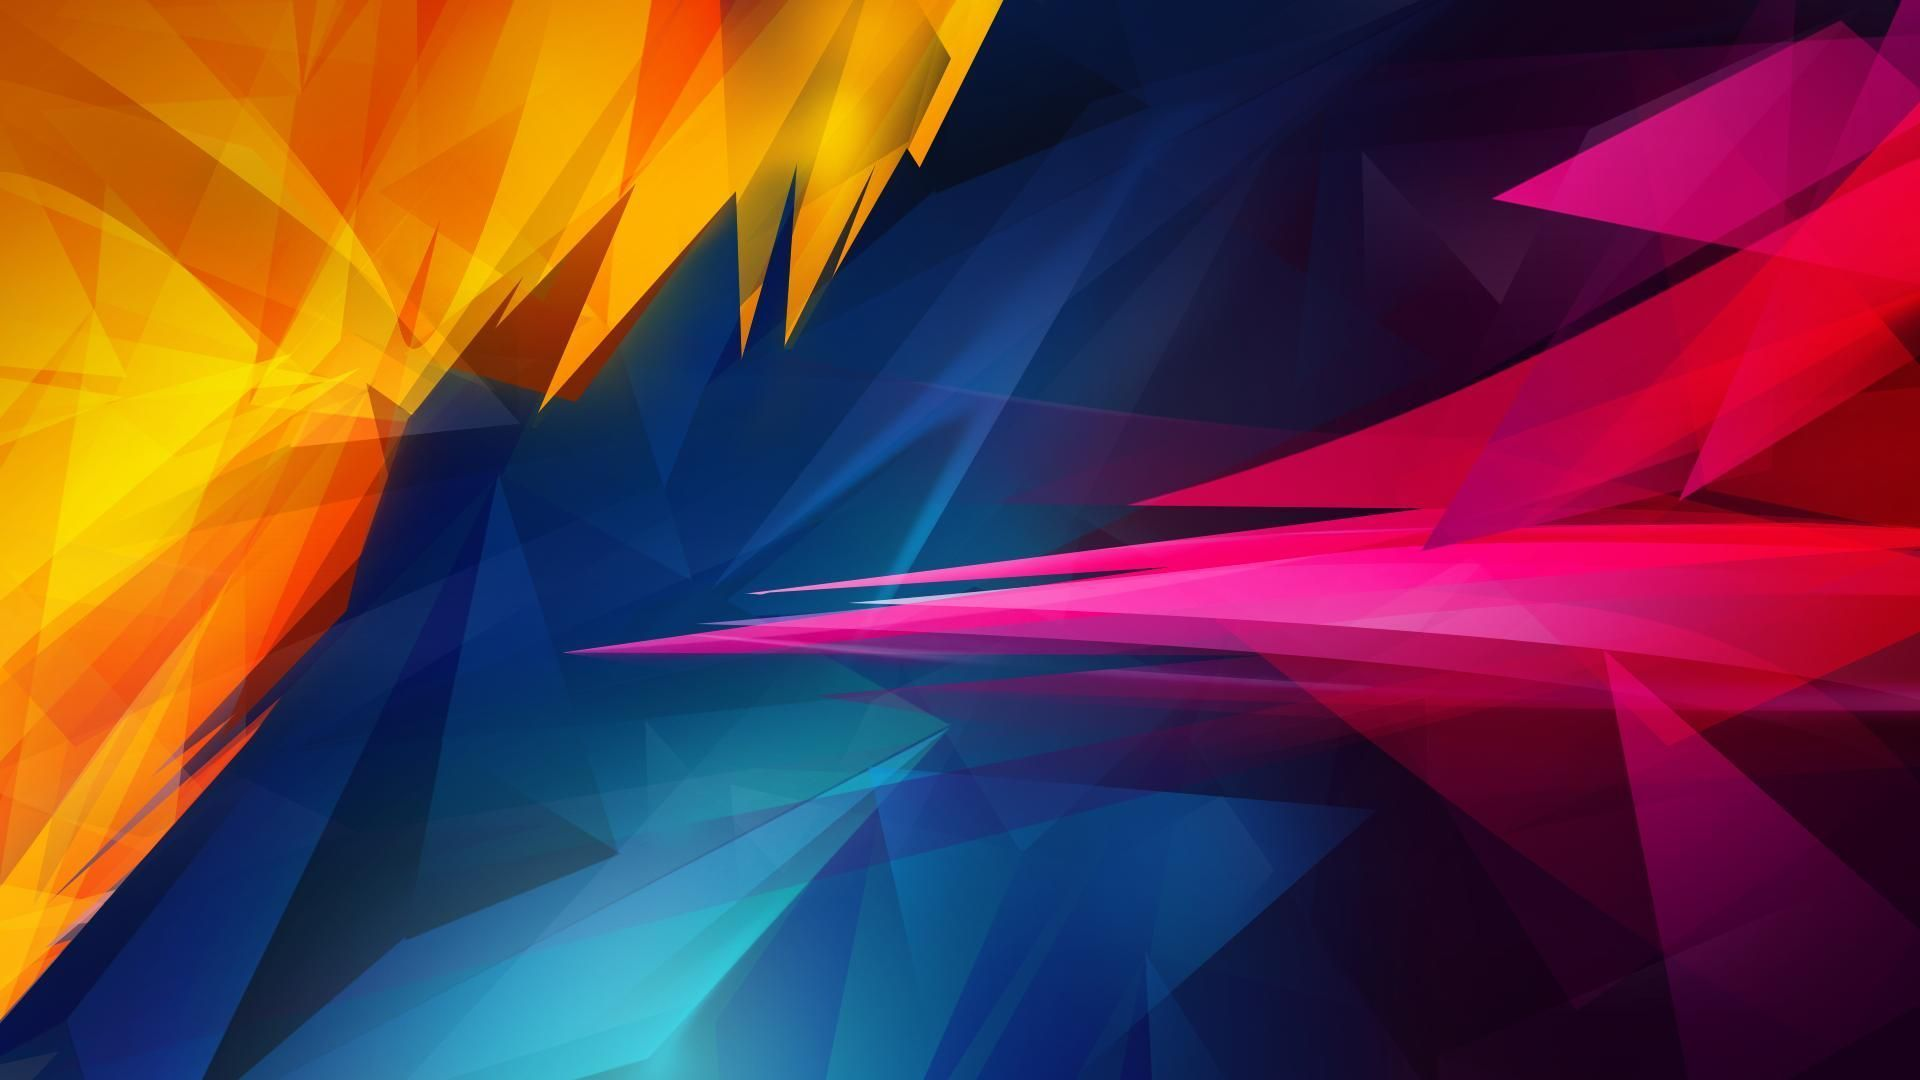 Background Images Hd 1080p